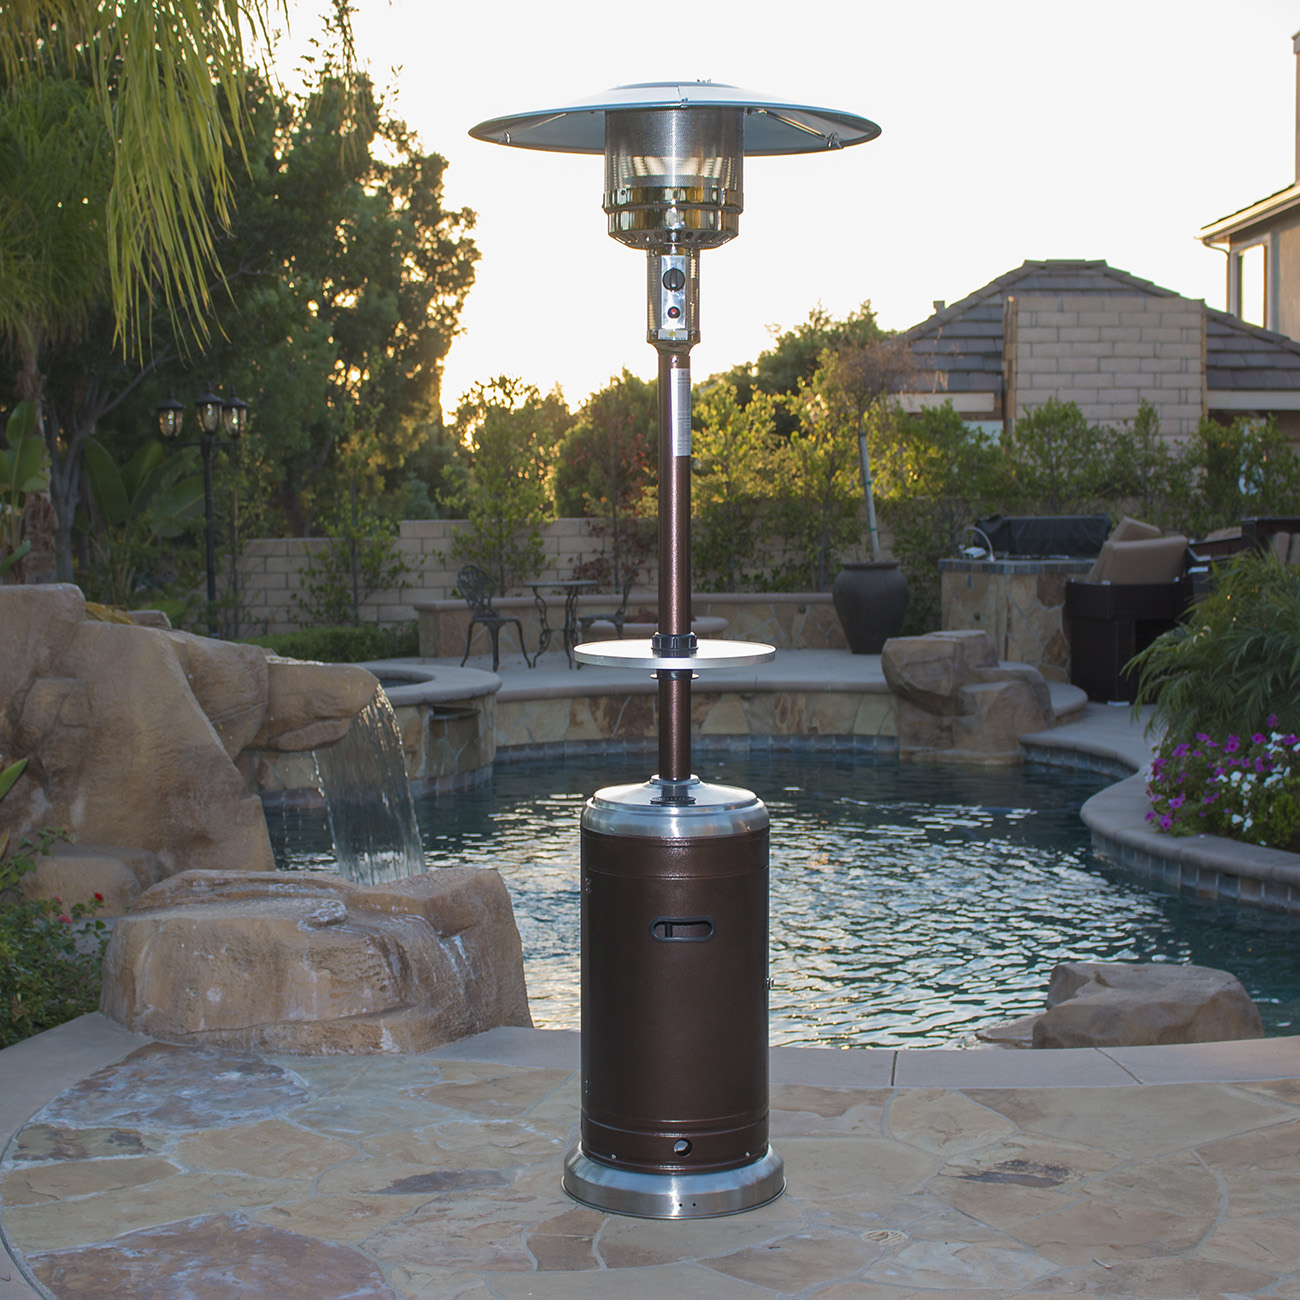 Garden Outdoor Patio Heater w Table Propane Standing lpg